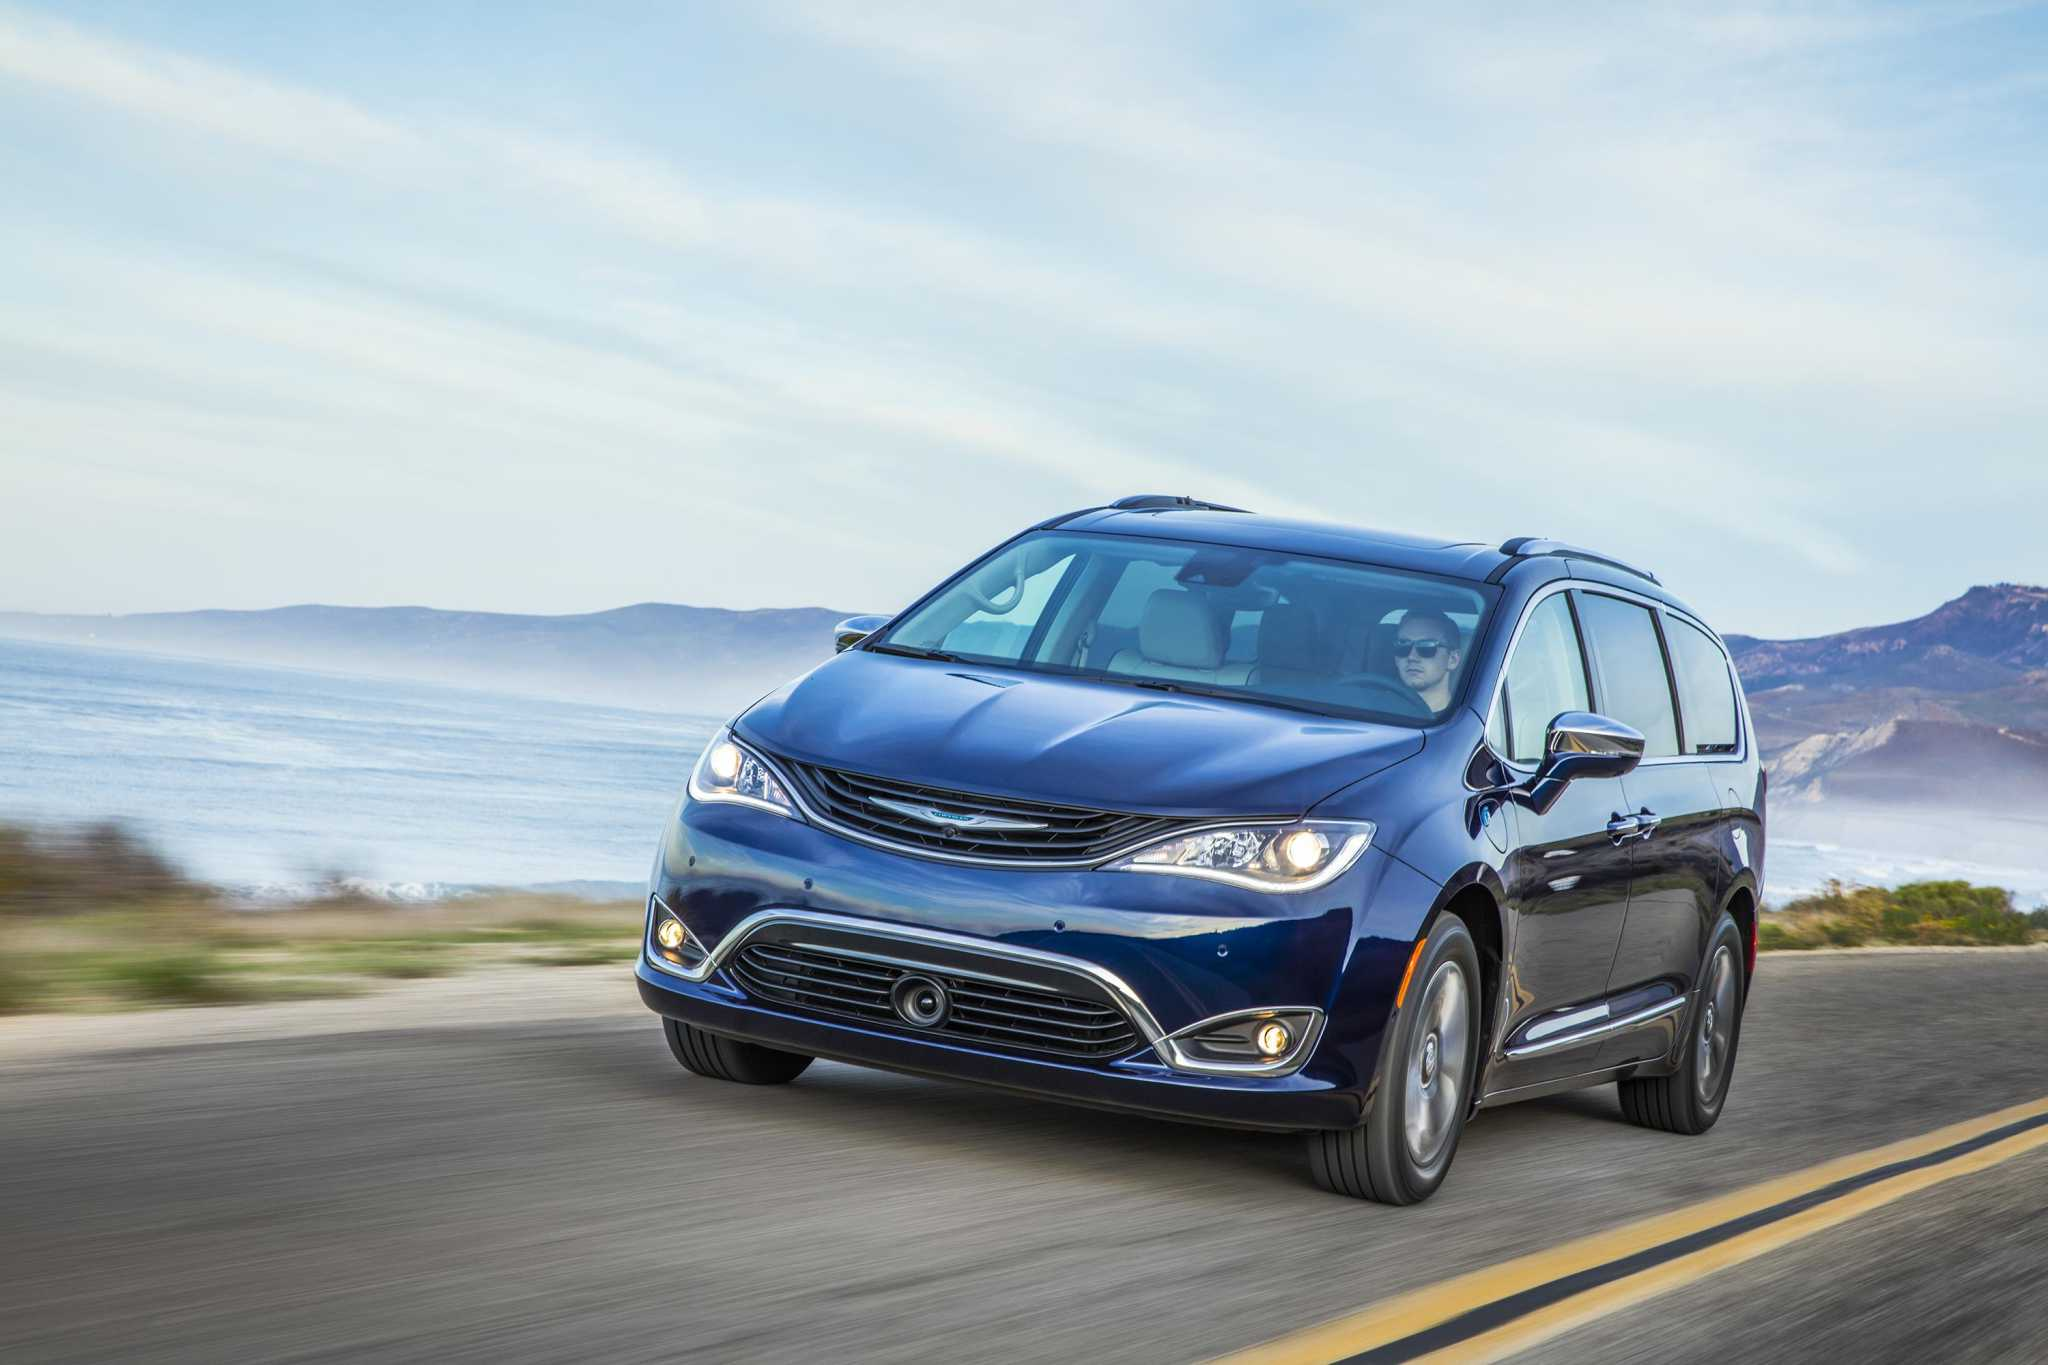 Chrysler Pacifica Hybrid: First electrified minivan